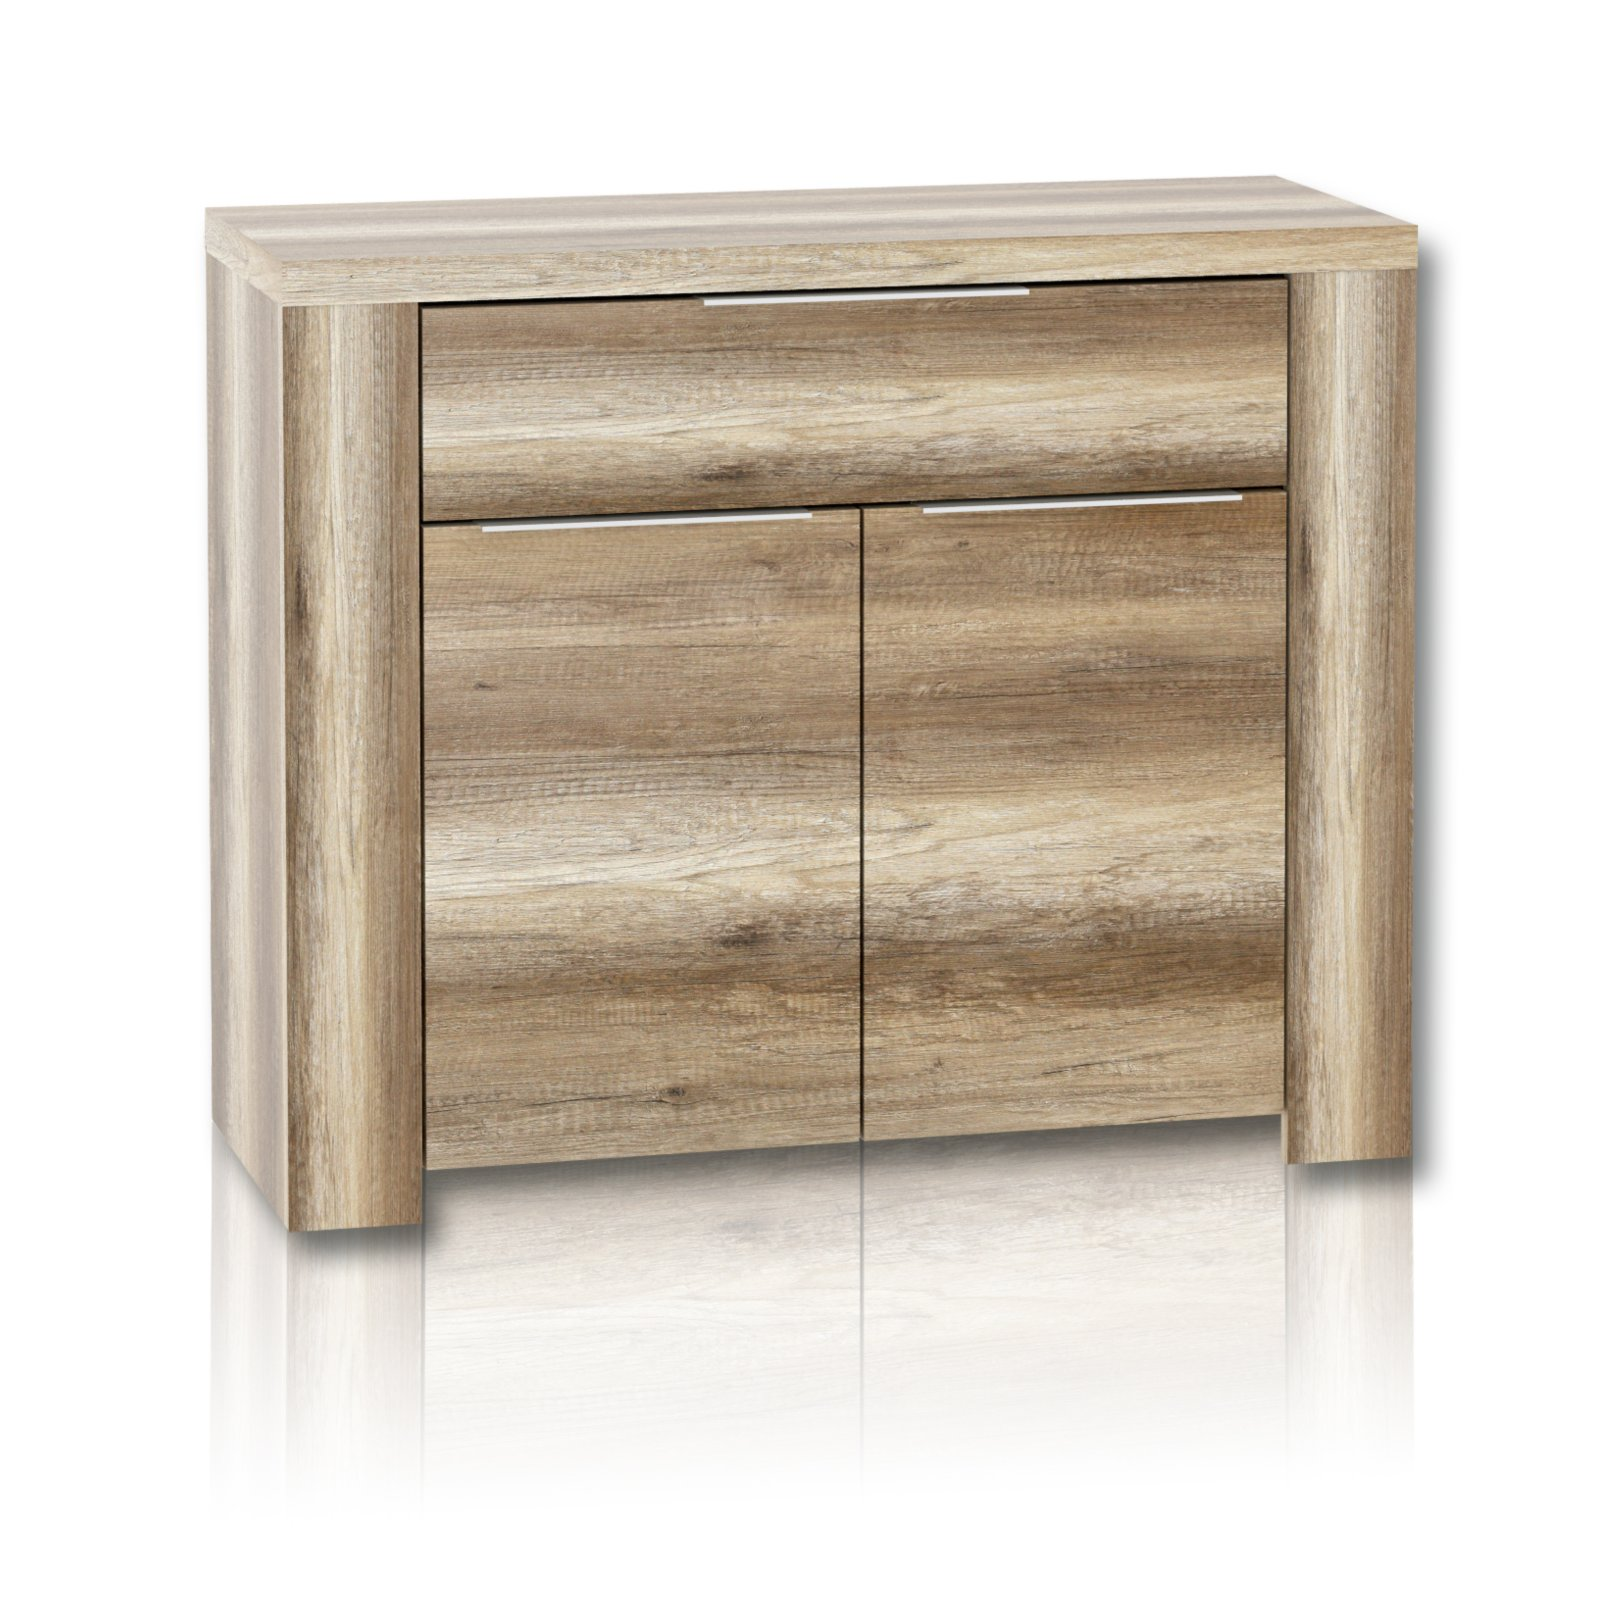 roller sideboard calpe eiche antik 104 cm breite ebay. Black Bedroom Furniture Sets. Home Design Ideas